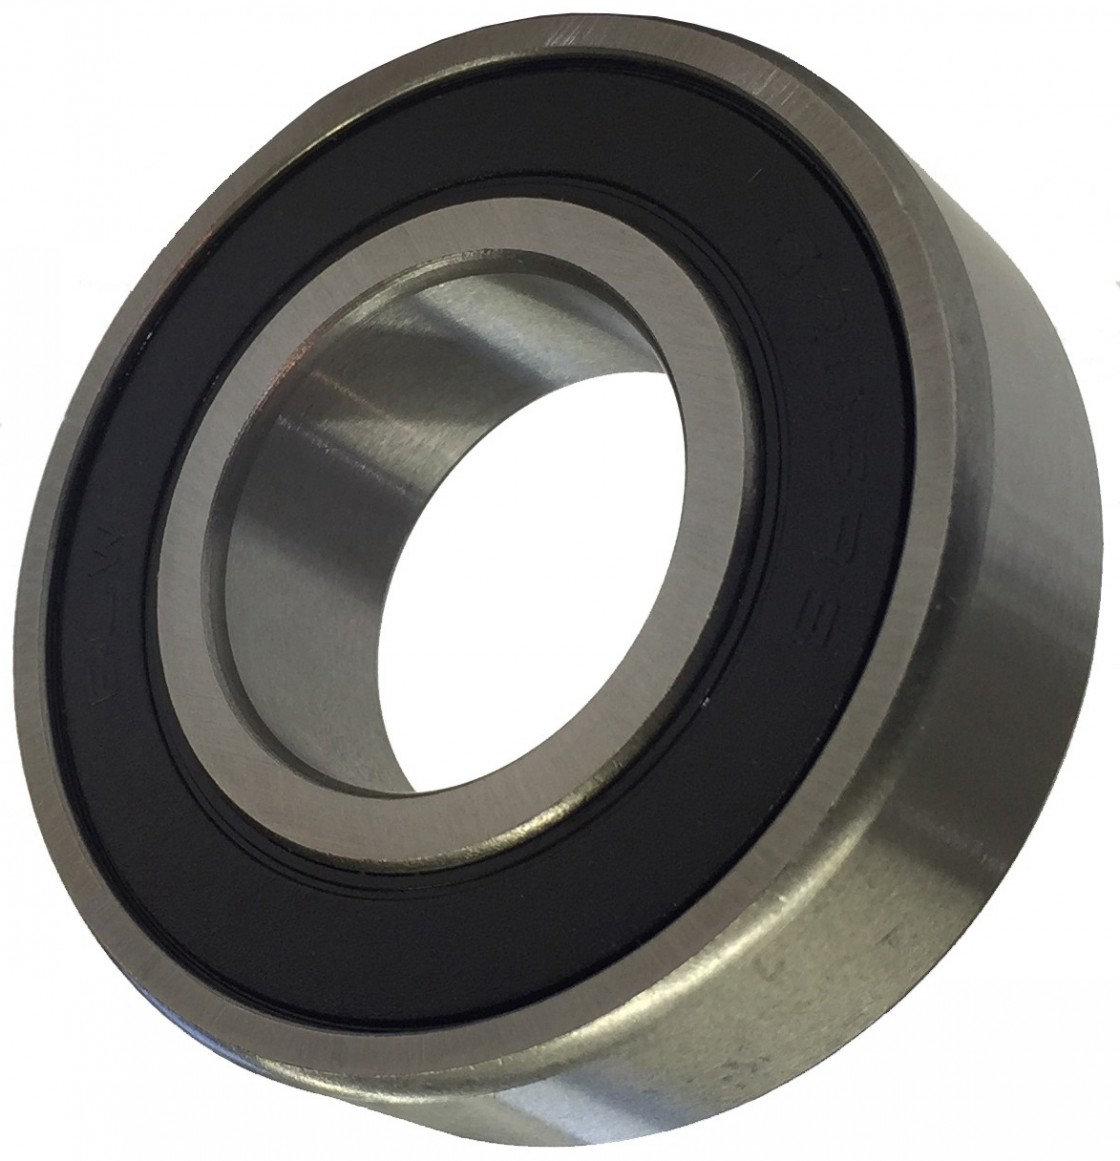 Reliable Bearings 6200 6201 6202 6203 6204 6205 6305 6306 6308 Zz 2RS Deep Groove Ball Bearing